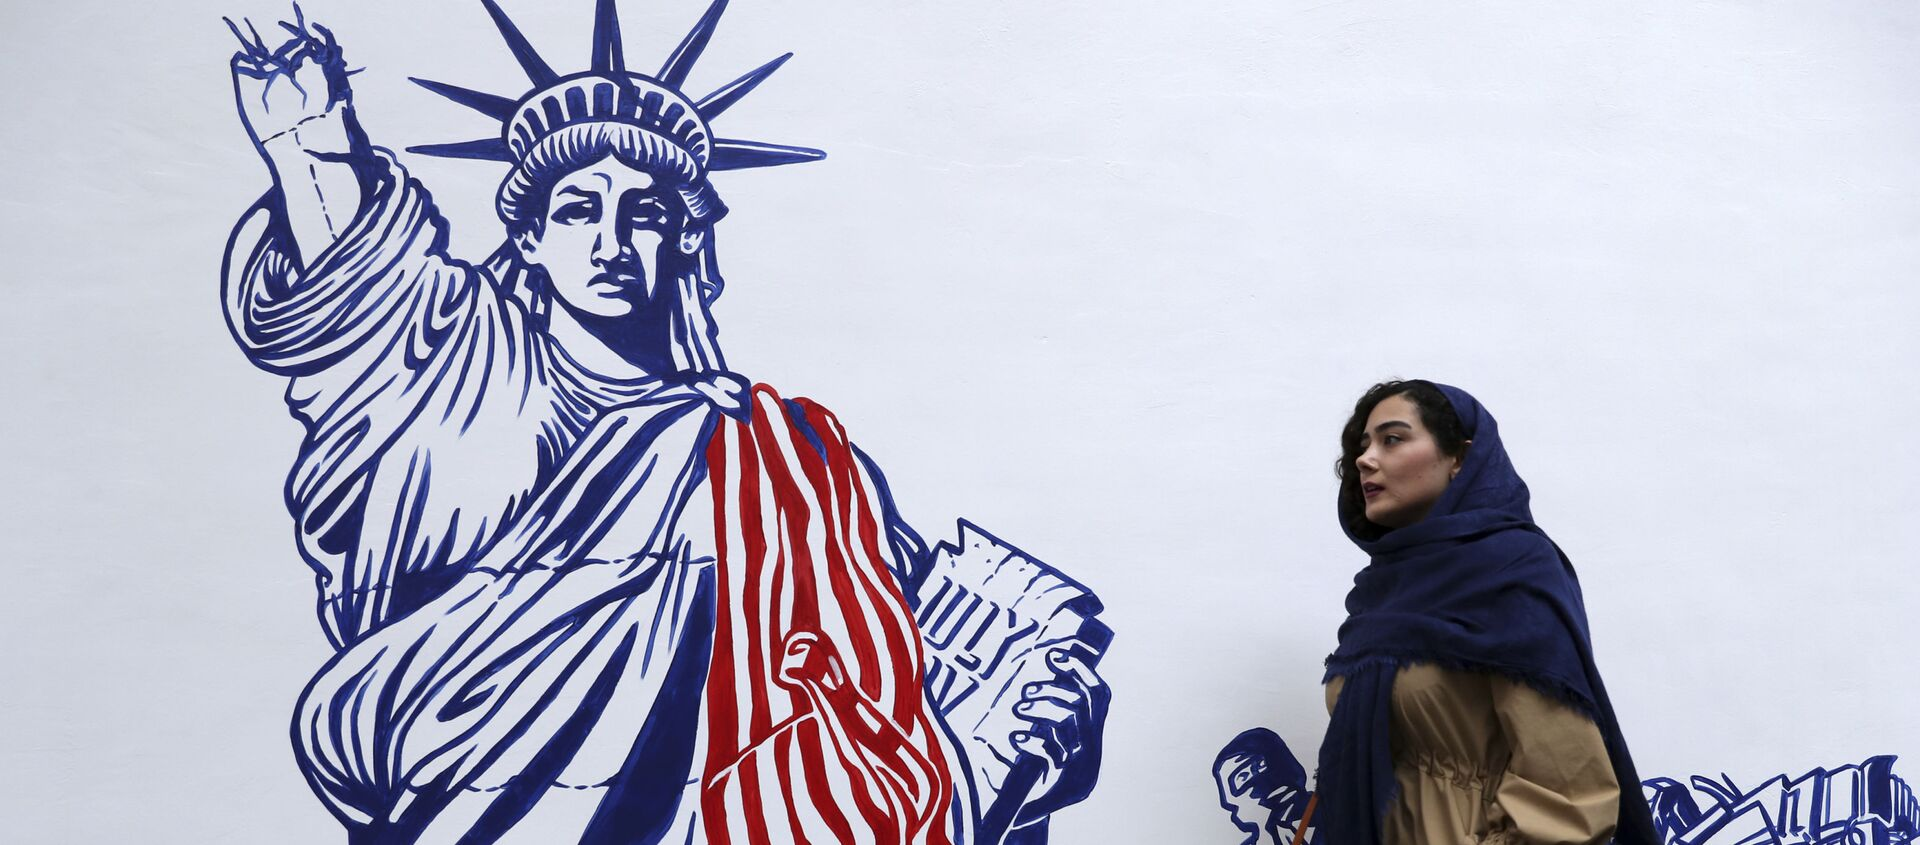 A woman walks past a satirical drawing of the Statue of Liberty after new anti-U.S. murals on the walls of former U.S. embassy unveiled in a ceremony in Tehran, Iran, Saturday, Nov. 2, 2019.  - Sputnik International, 1920, 29.08.2021